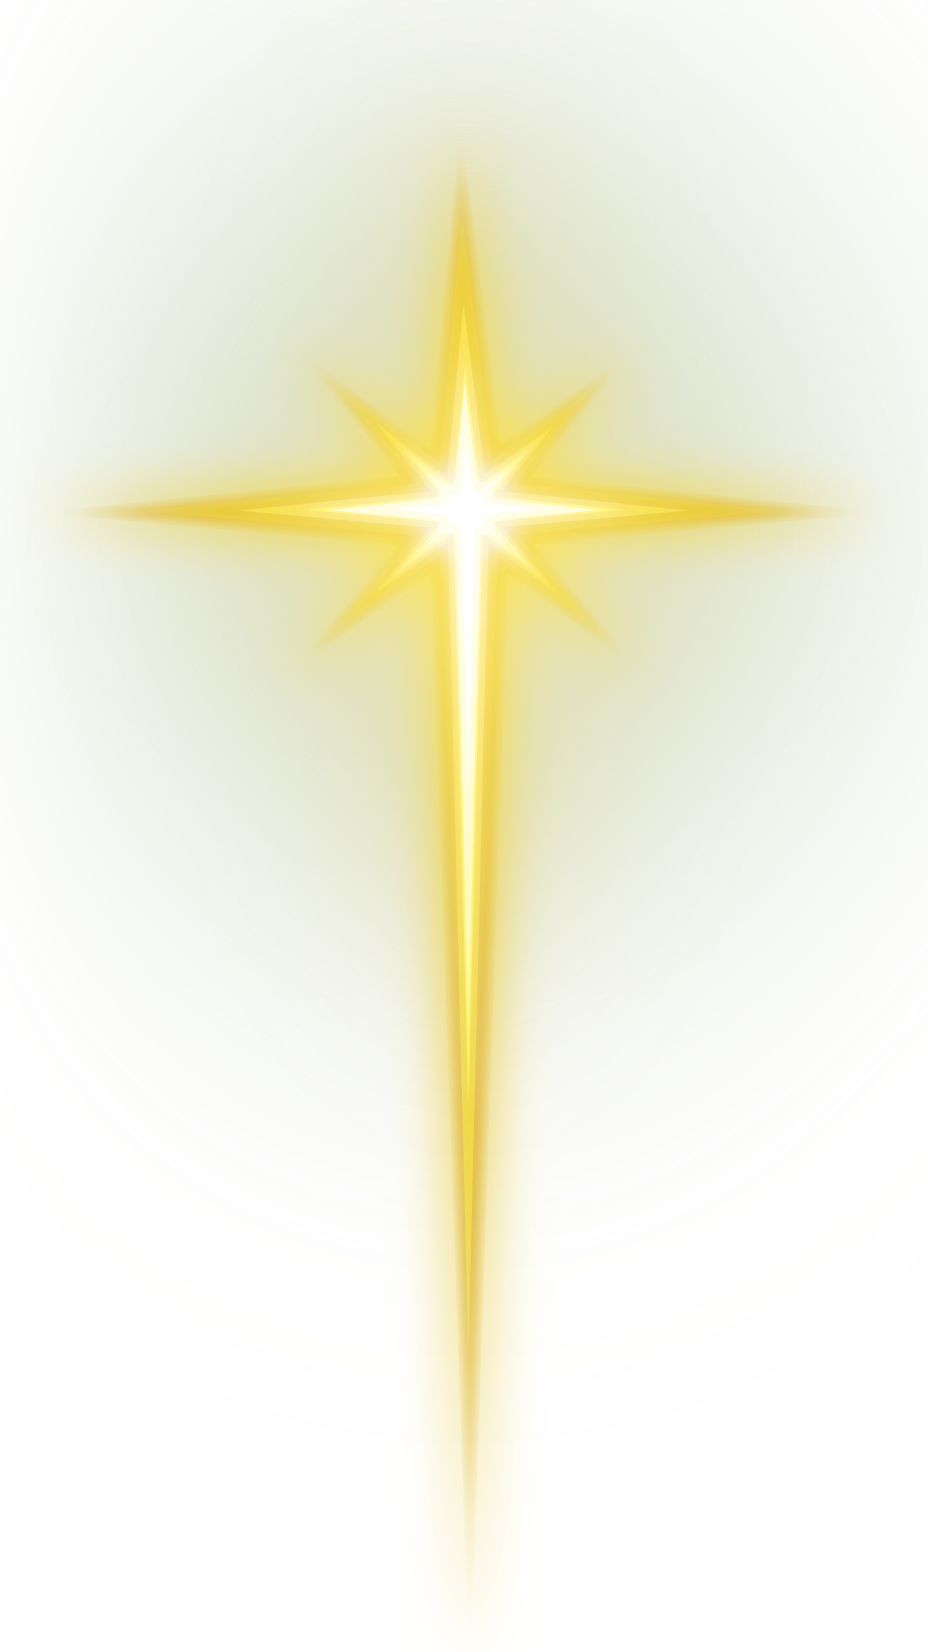 star of bethlehem drawing at getdrawings com free for personal use rh getdrawings com Elegant Star of Bethlehem Clip Art Star of Bethlehem Silhouette